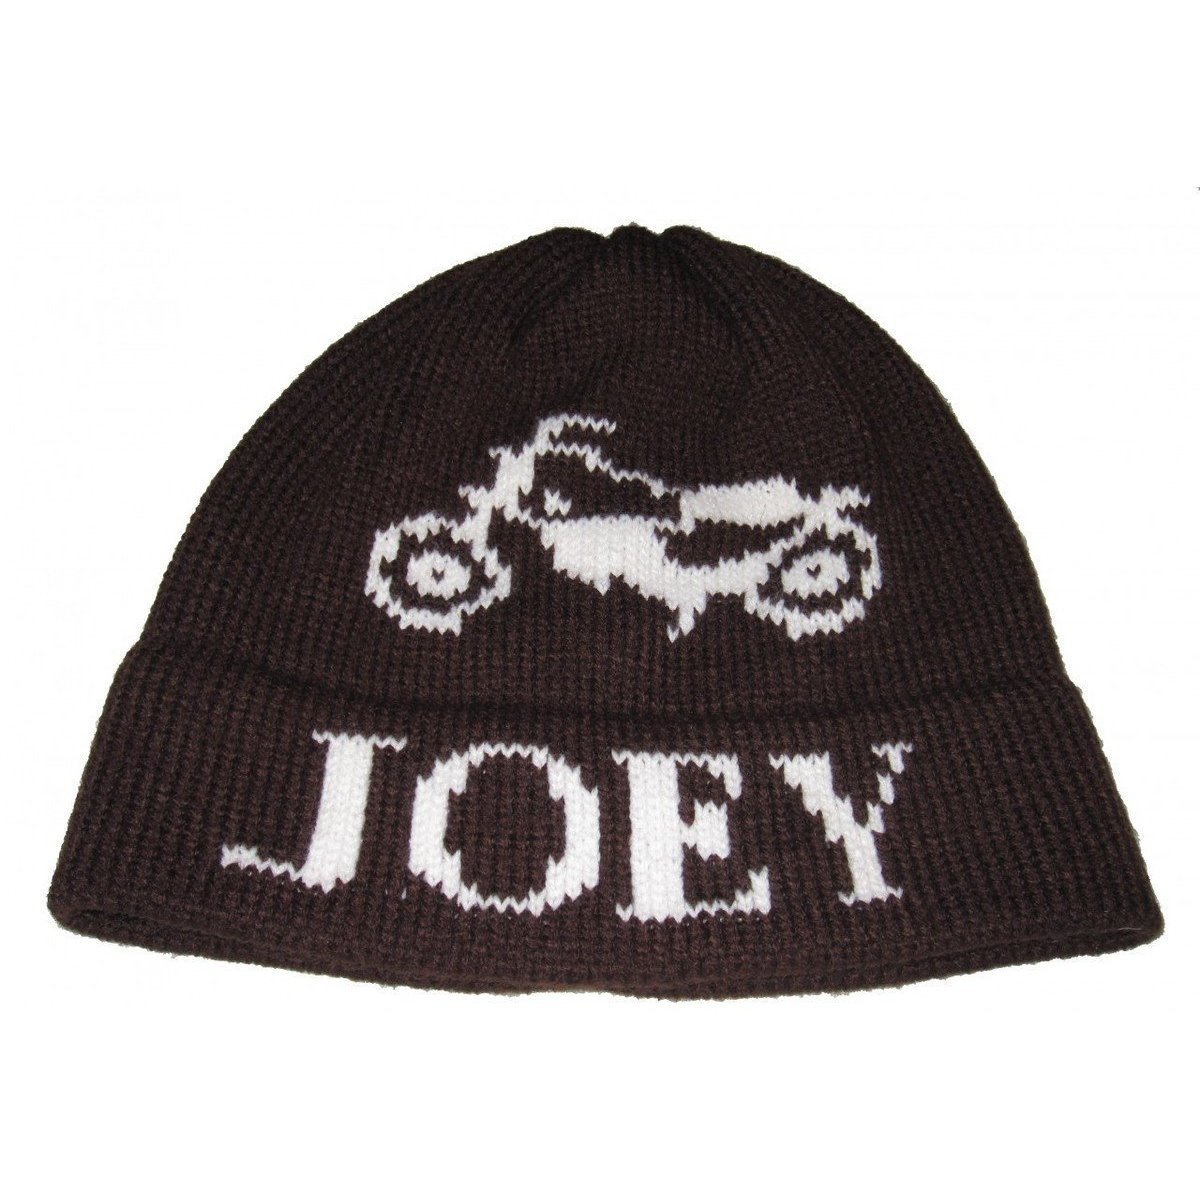 4532cf71a35 Motorcycle Personalized Knit Flap Hat - Jack and Jill Boutique